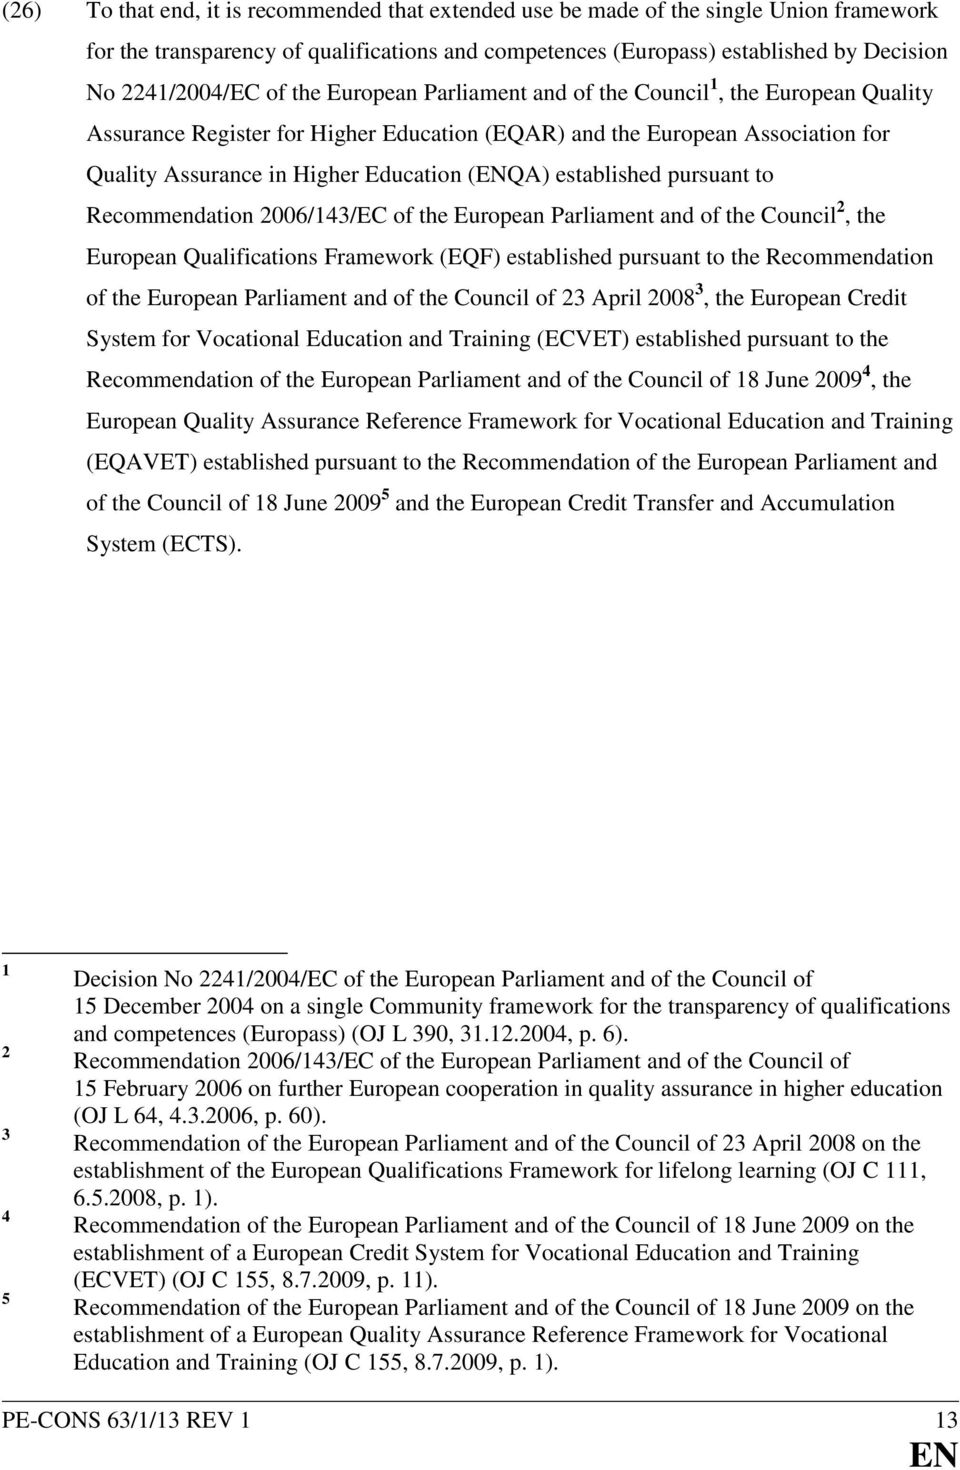 established pursuant to Recommendation 2006/143/EC of the European Parliament and of the Council 2, the European Qualifications Framework (EQF) established pursuant to the Recommendation of the